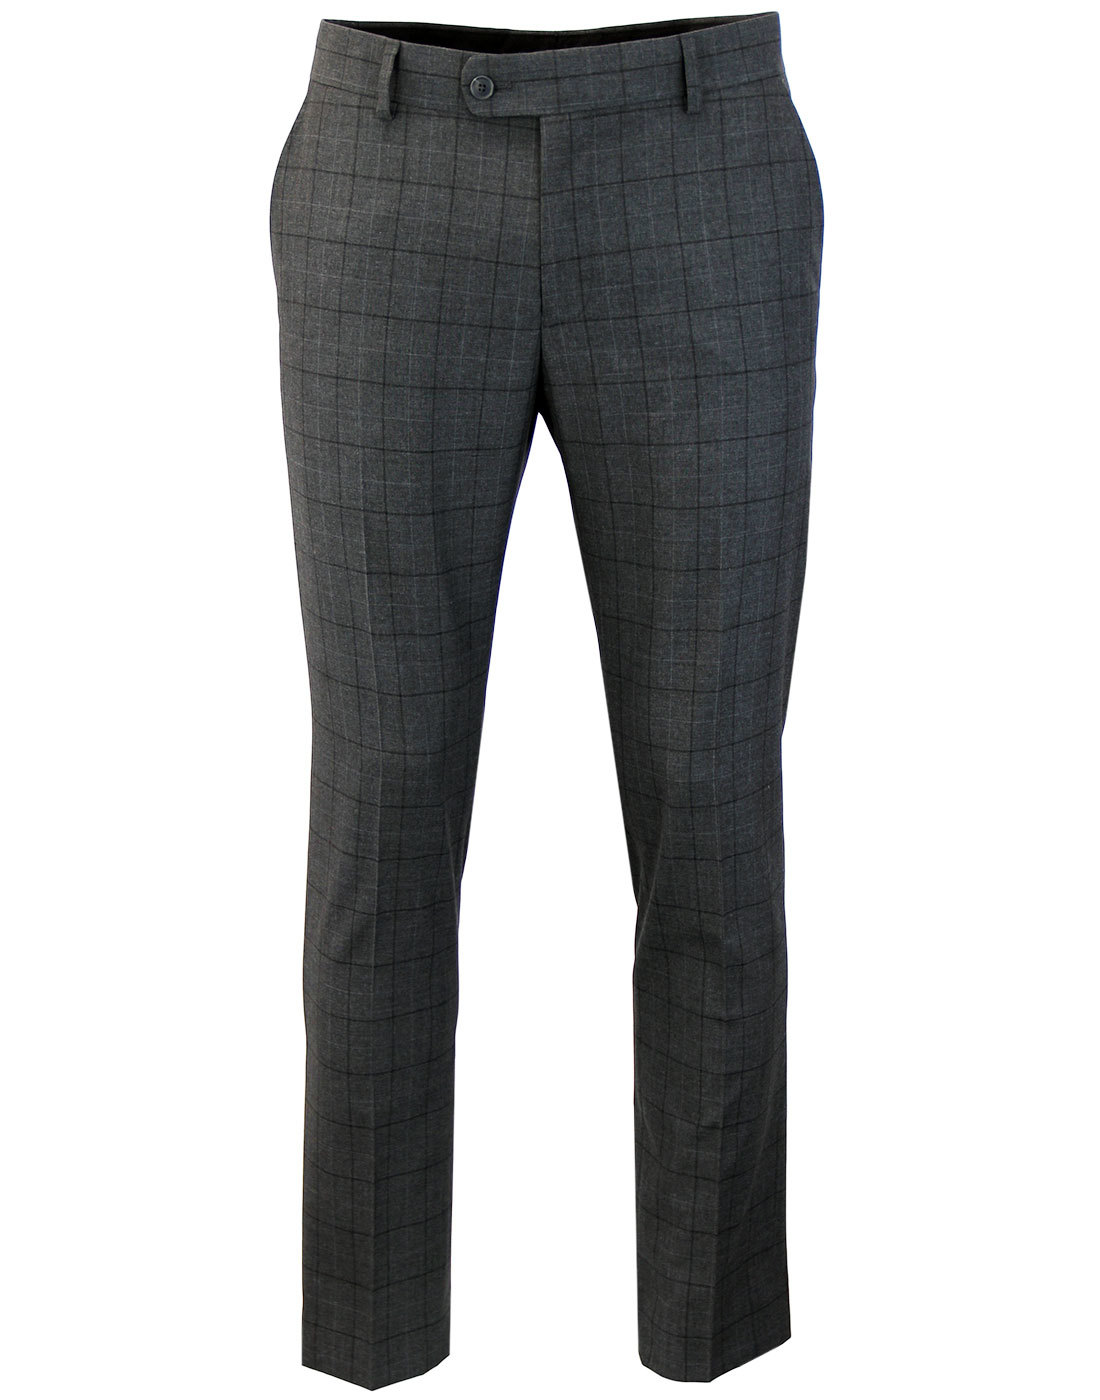 Men's Retro 60s Mod Windowpane Check Suit Trousers